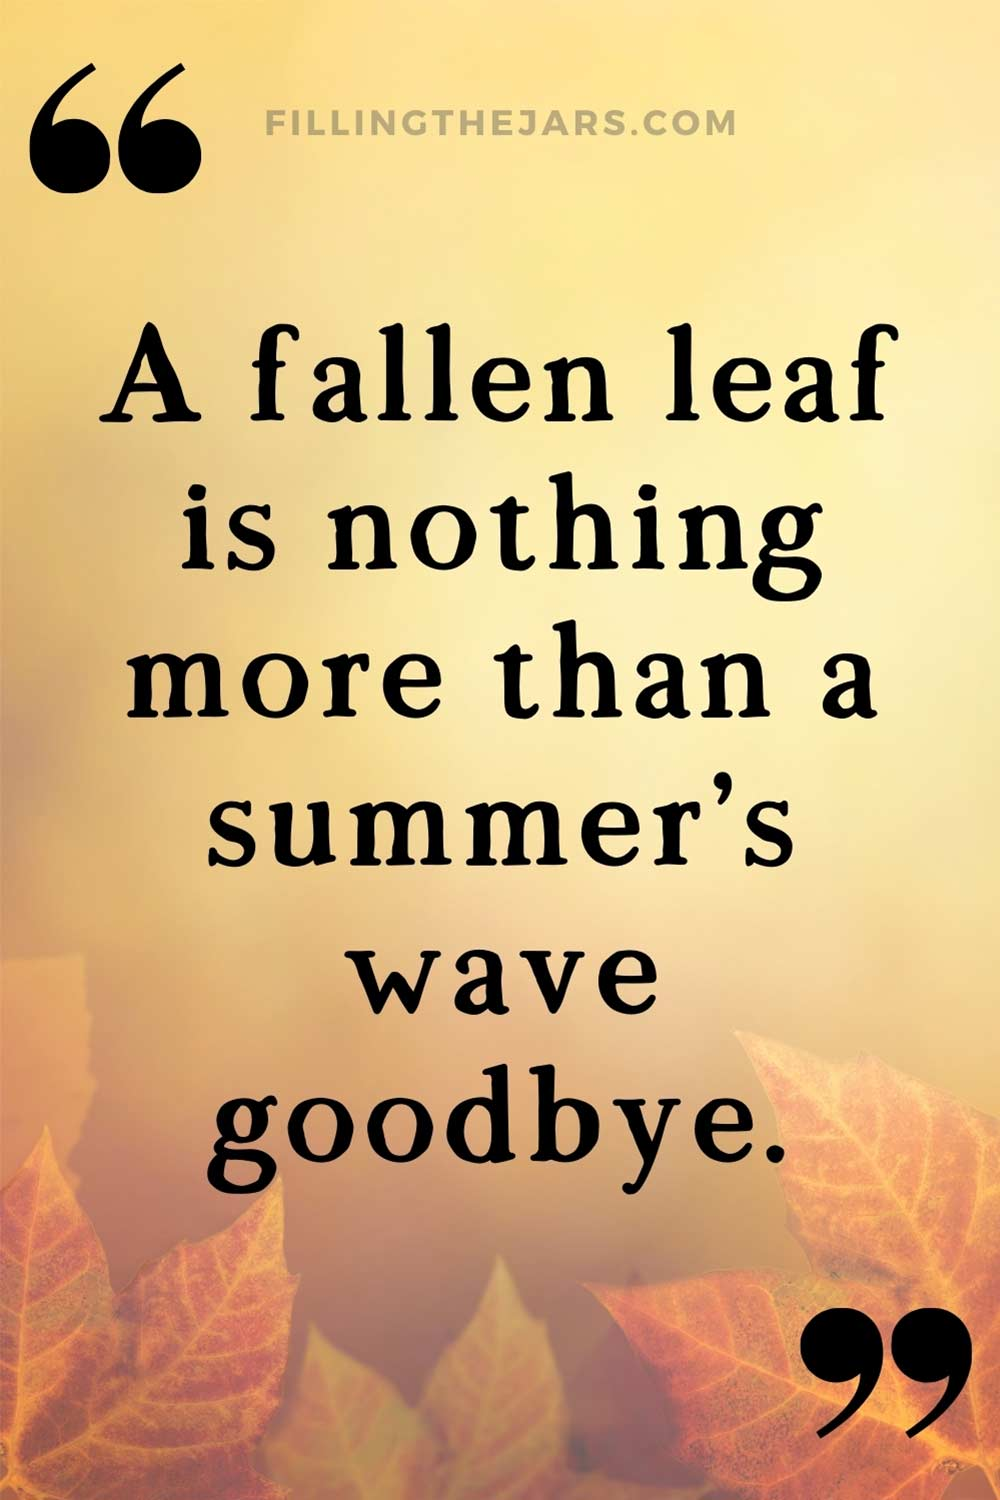 A fallen leaf is a summer's wave goodbye quote in black text on faded image of autumn leaves.